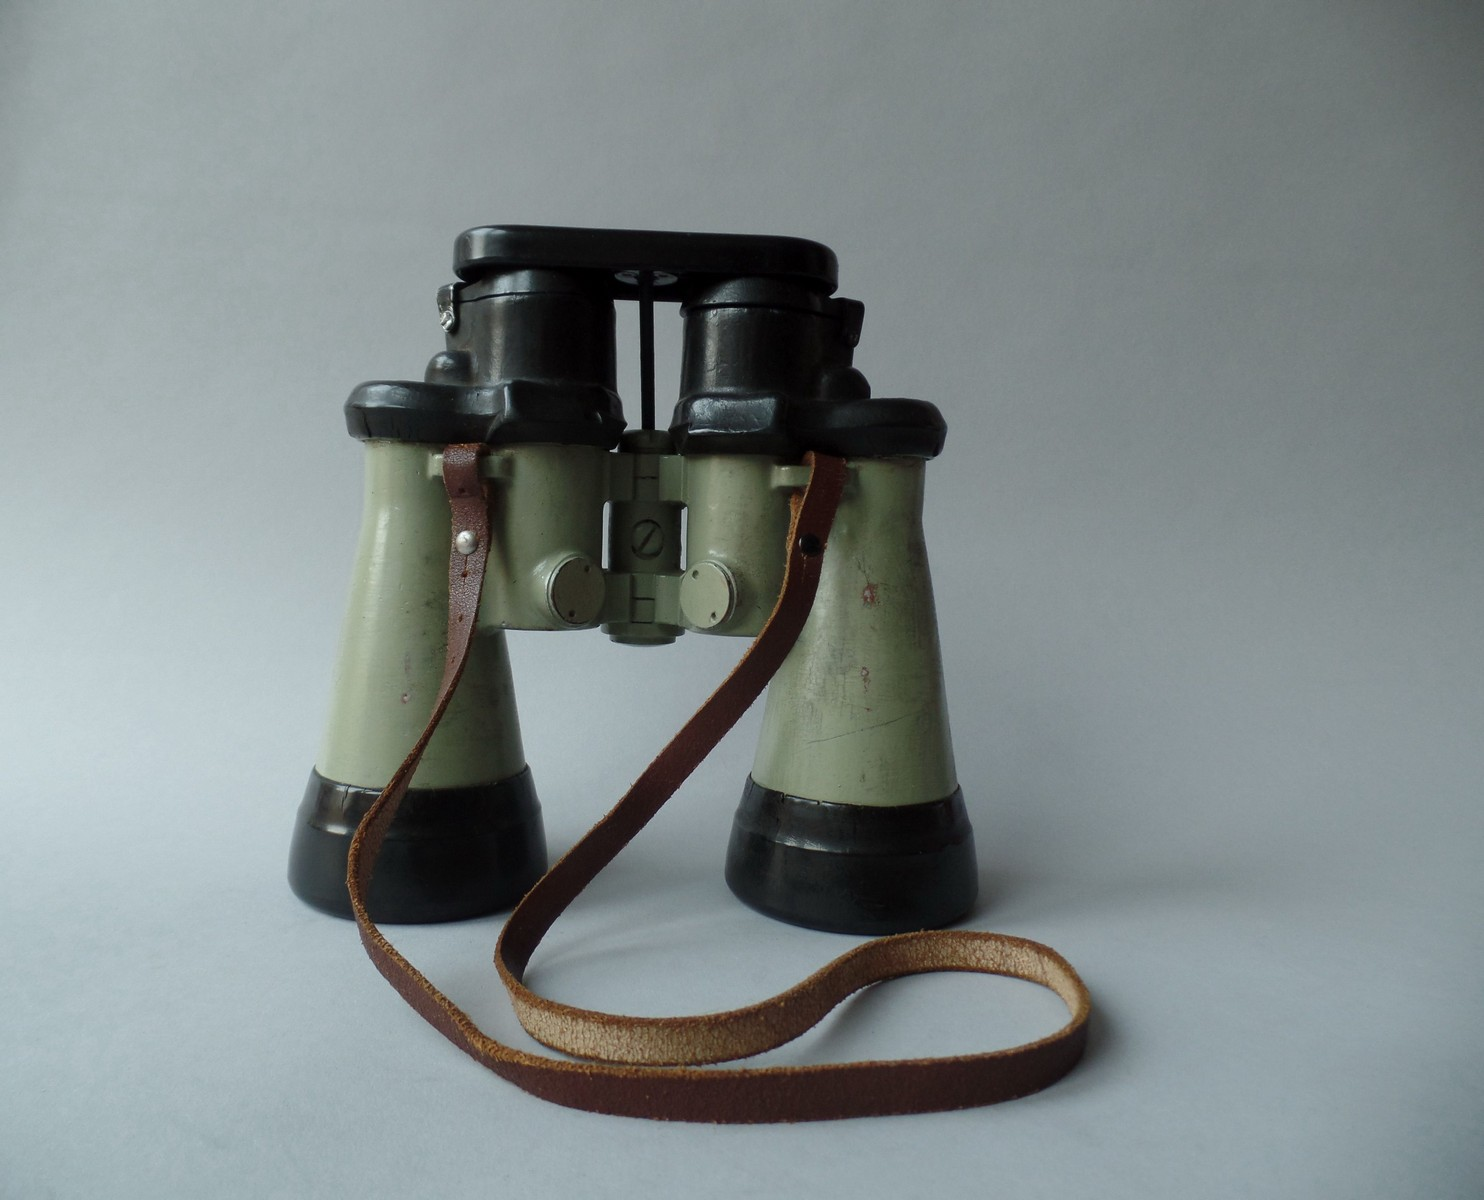 U-BOAT BINOCULARS – CARL ZEISS 7X50 BLC 1943 - CLEANED AND SERVICED